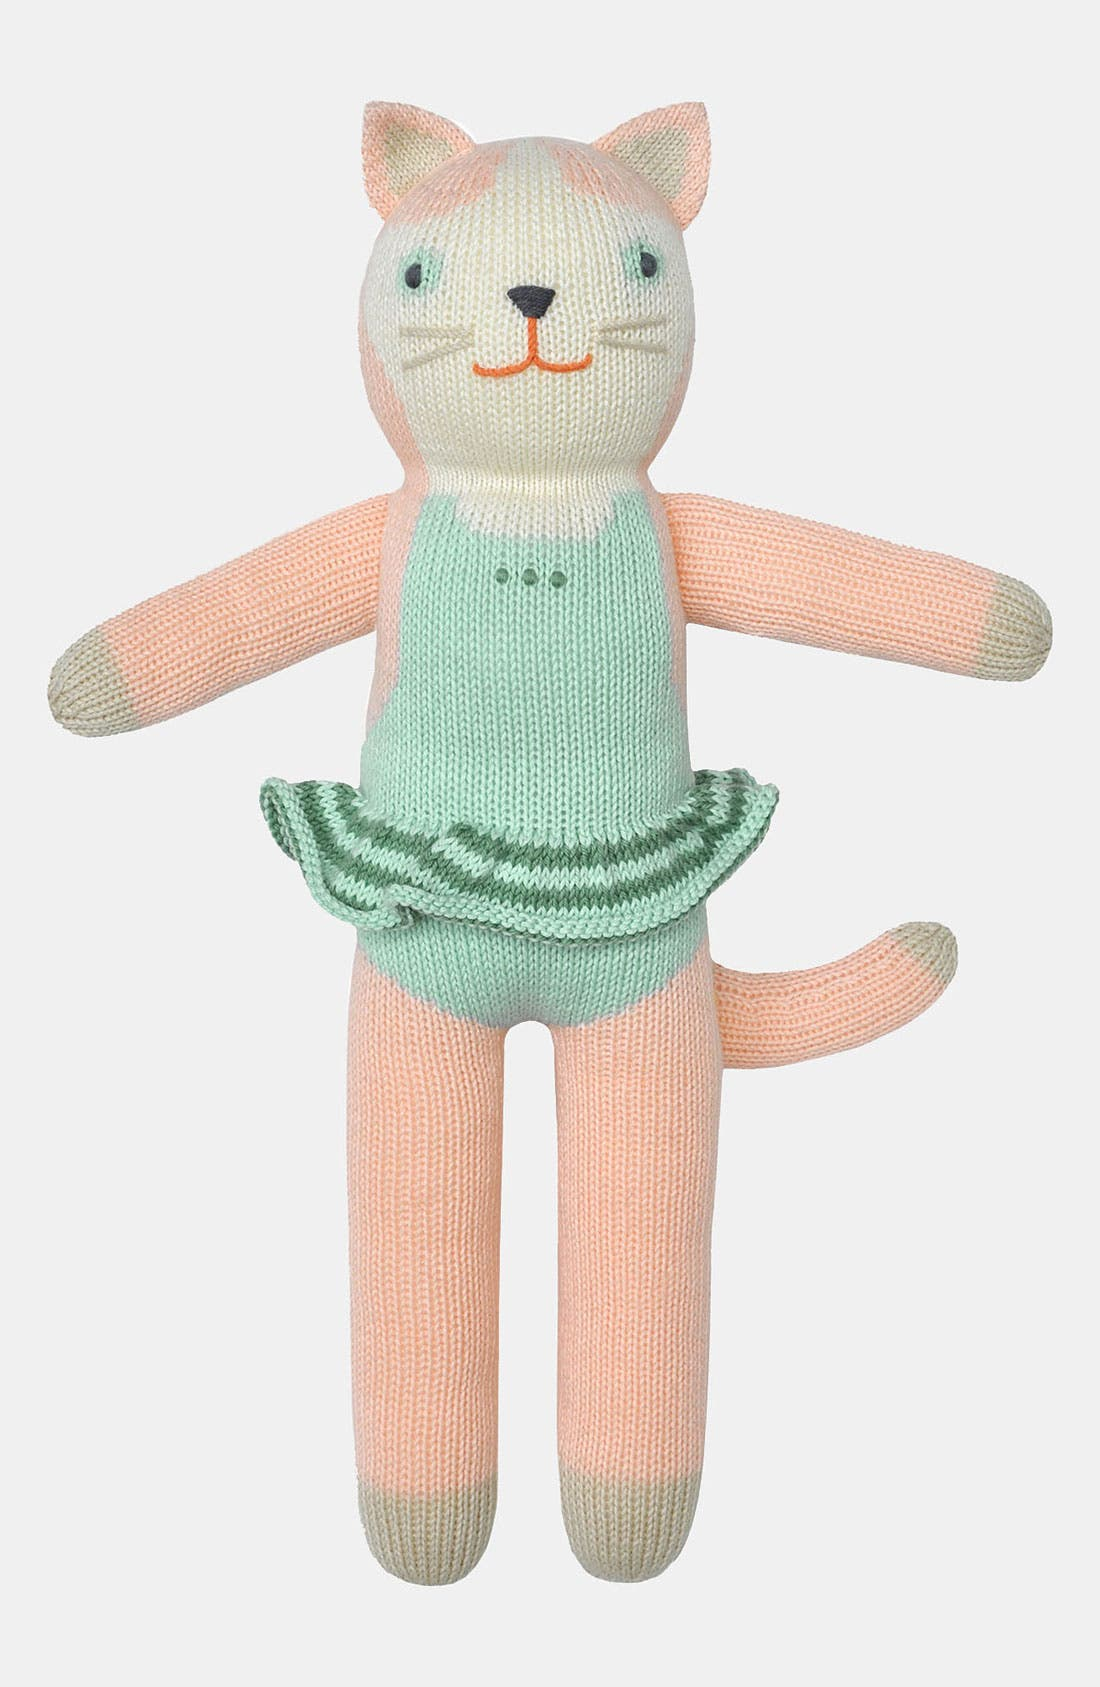 Alternate Image 1 Selected - Blabla 'Splash the Cat' Knit Doll